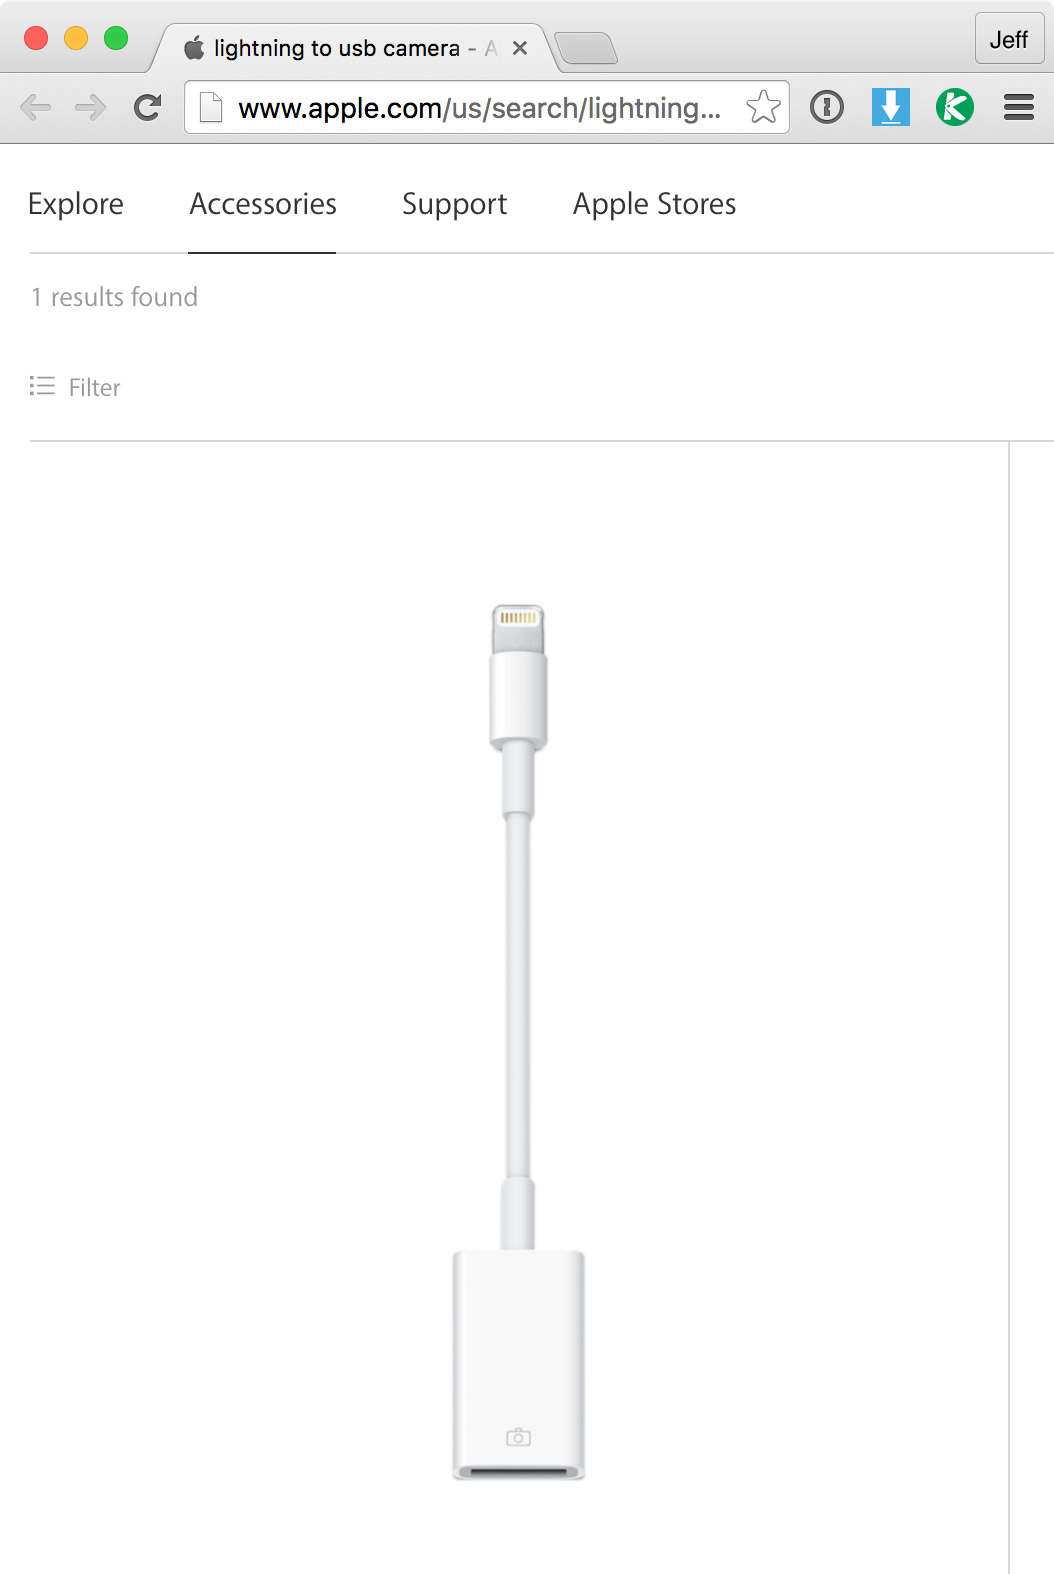 Apple USB Lightning Search Results